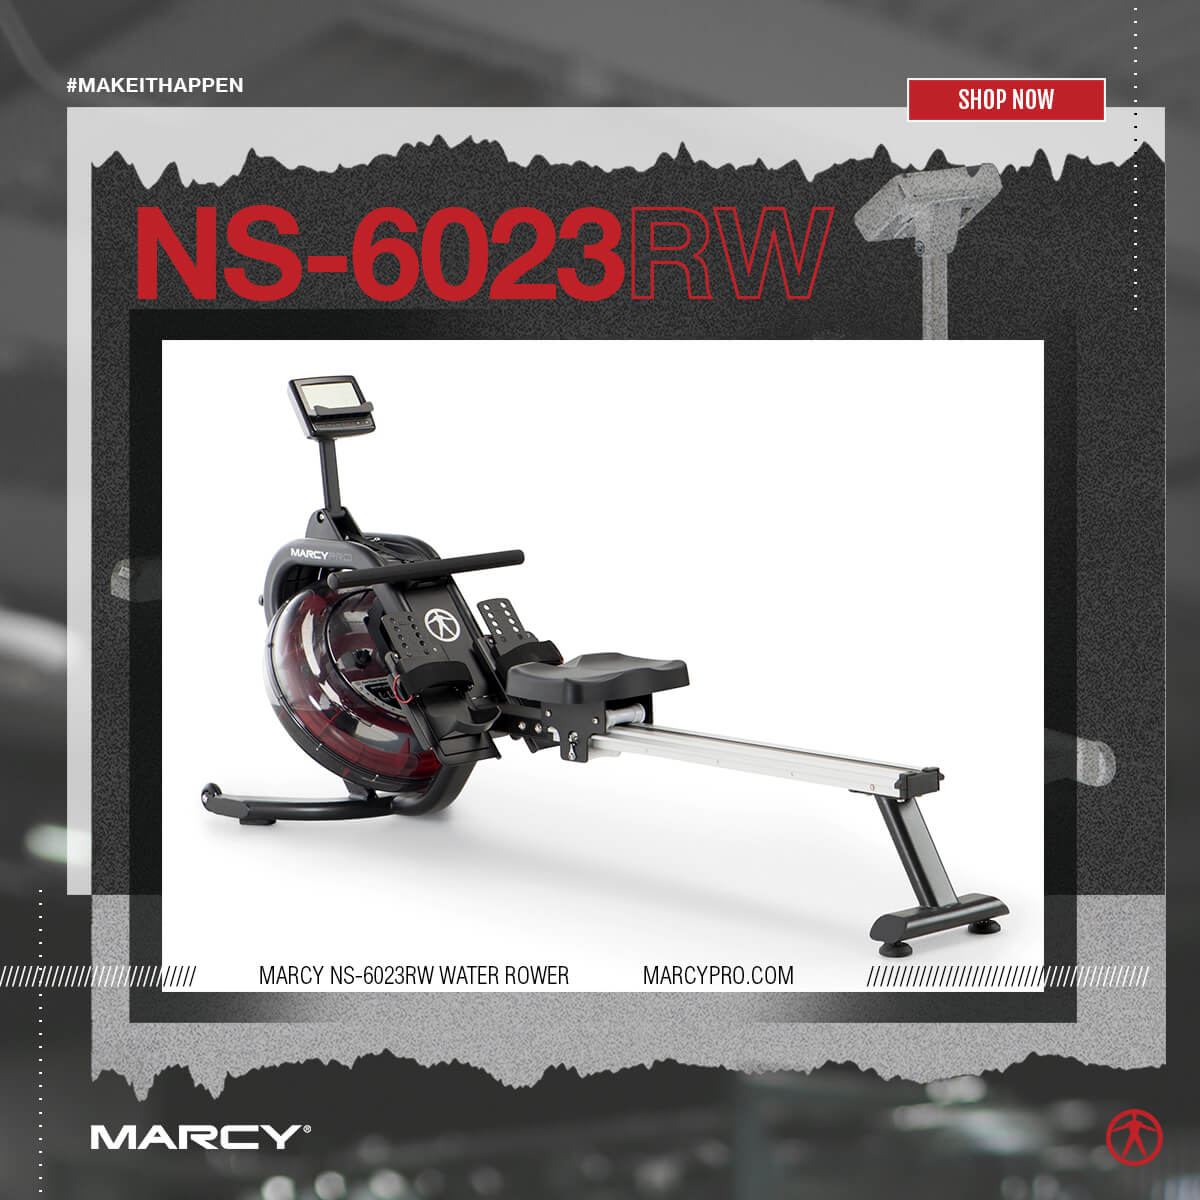 Marcy NS-6023RW Product Highlight